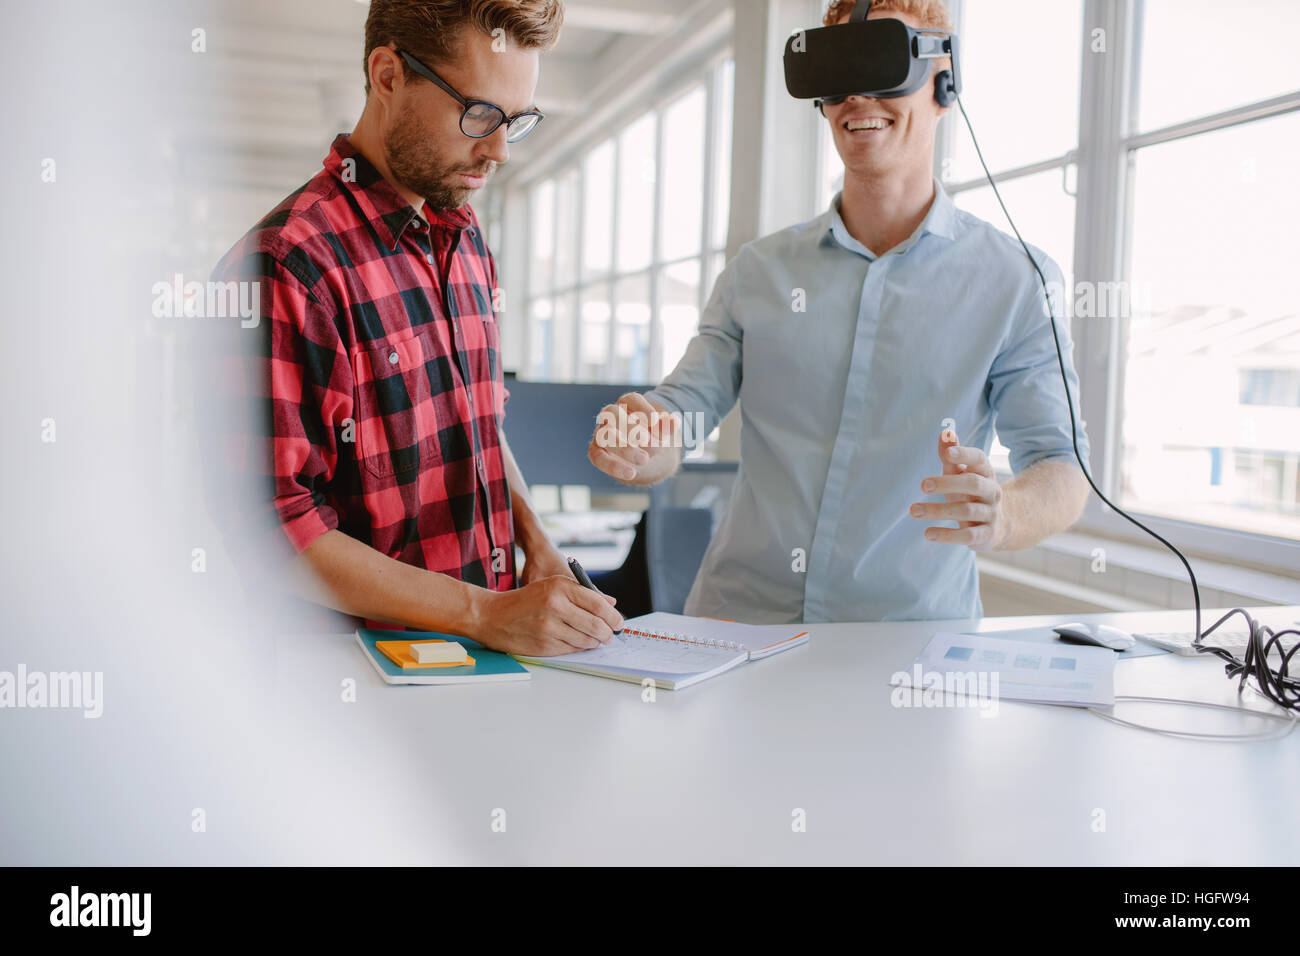 Young man writing notes with colleague wearing virtual reality goggles in office. Developers working on augmented - Stock Image